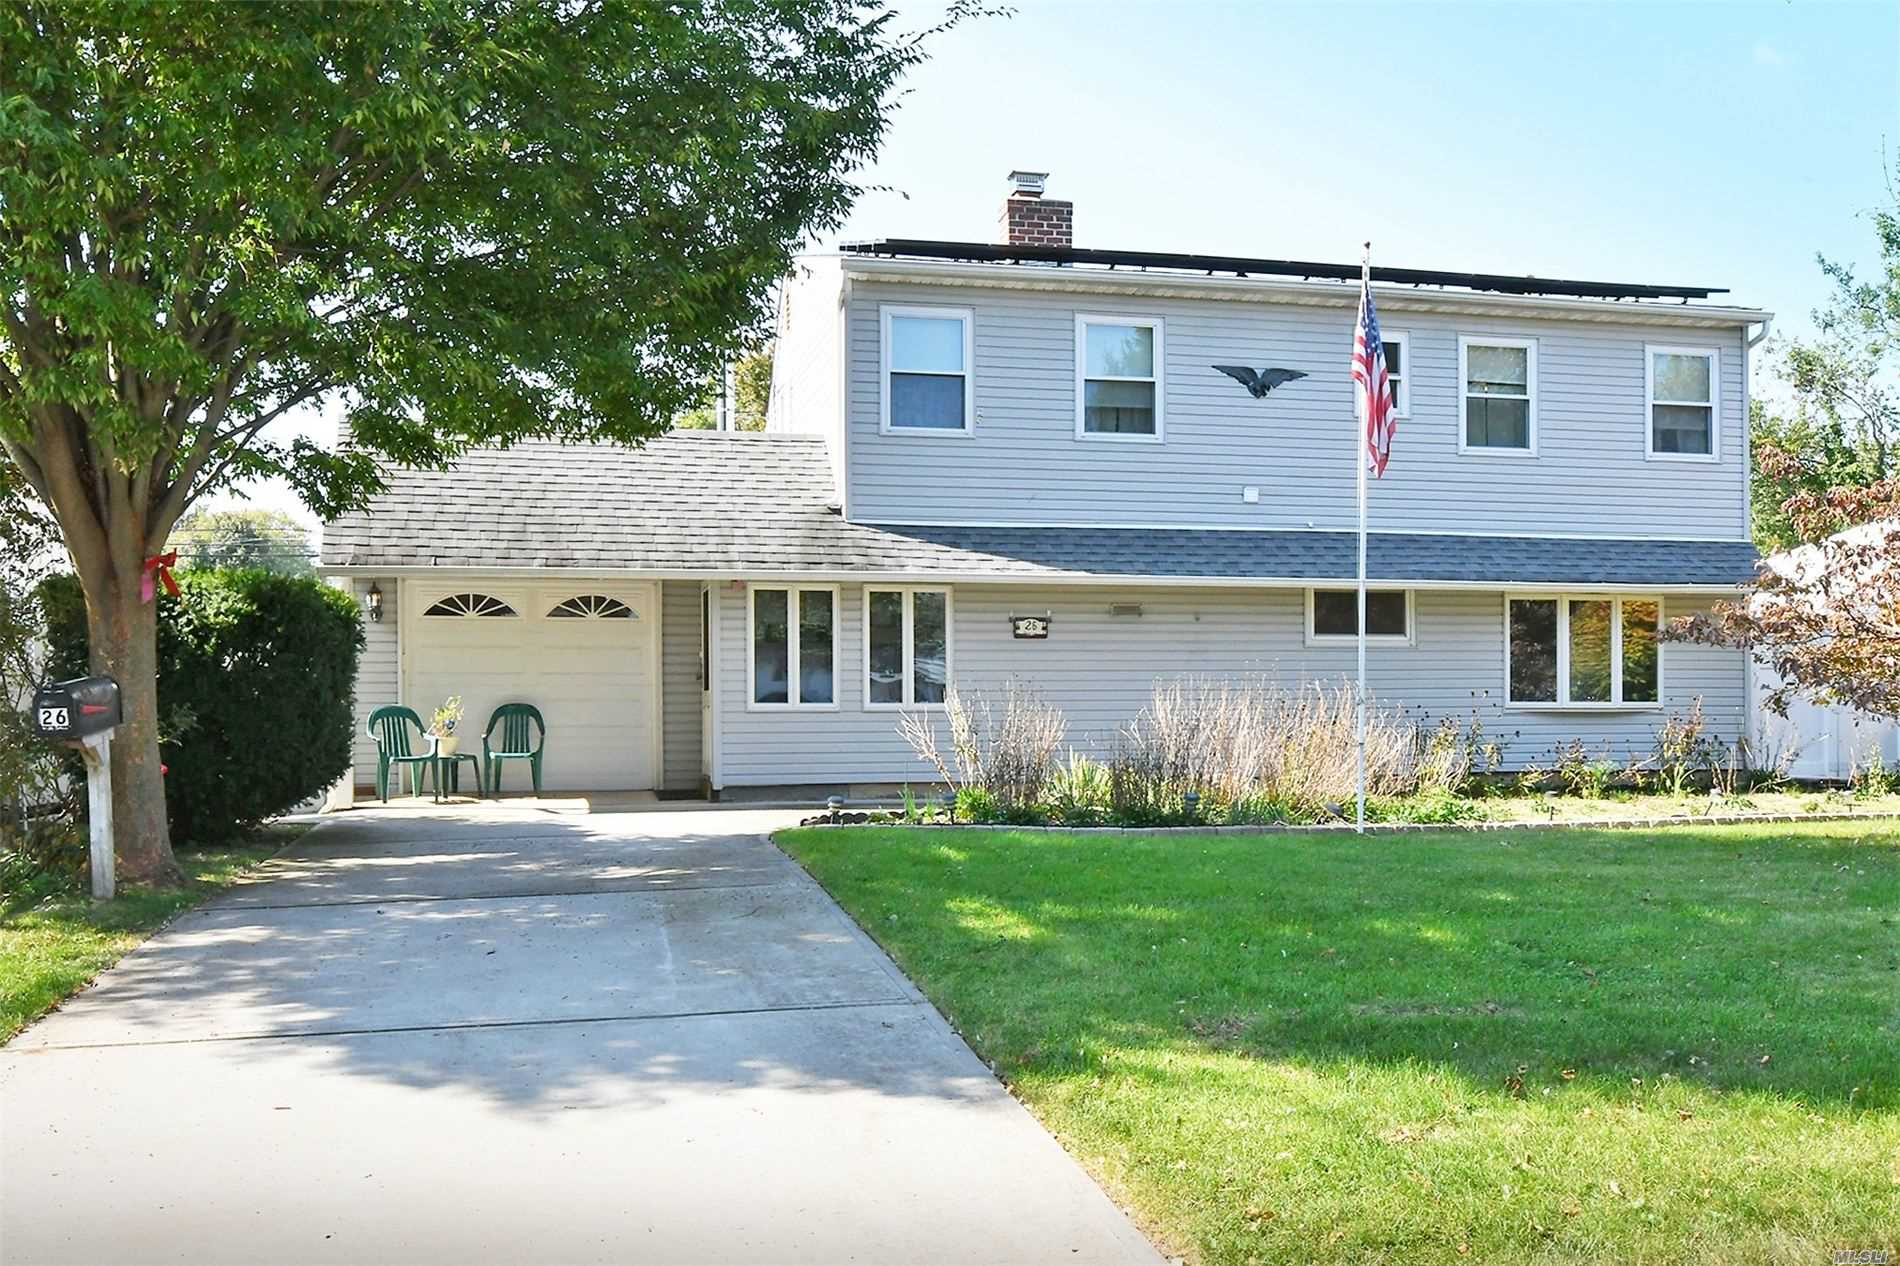 Extra Low Taxes! - Efficient & Versatile Dormered Cape in Island Trees School District. Large EIK & Living Room/Den Surround a Dual-Side Wood Burning Fireplace. 2 Bedrooms, Full Bath & 1.5 Car Garage Complete the First Floor. 2nd Floor Boasts 2 Large Bedrooms w/Ample Closet Space & Full Bath. Flat Fenced in Backyard has Covered Patio & Entry to Garage. Updated Roof & Siding, 5 Year New Windows, Mini Split CAC, 150 Amp Elec, IGS, Solar Panels are owned less than $50 electric bill p/month!